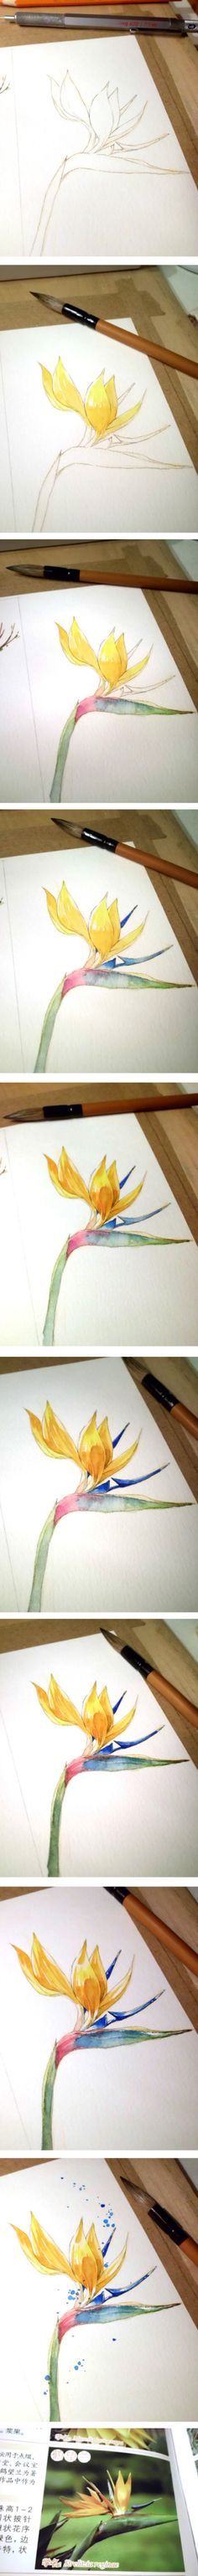 Bird of paradise watercolur step by step